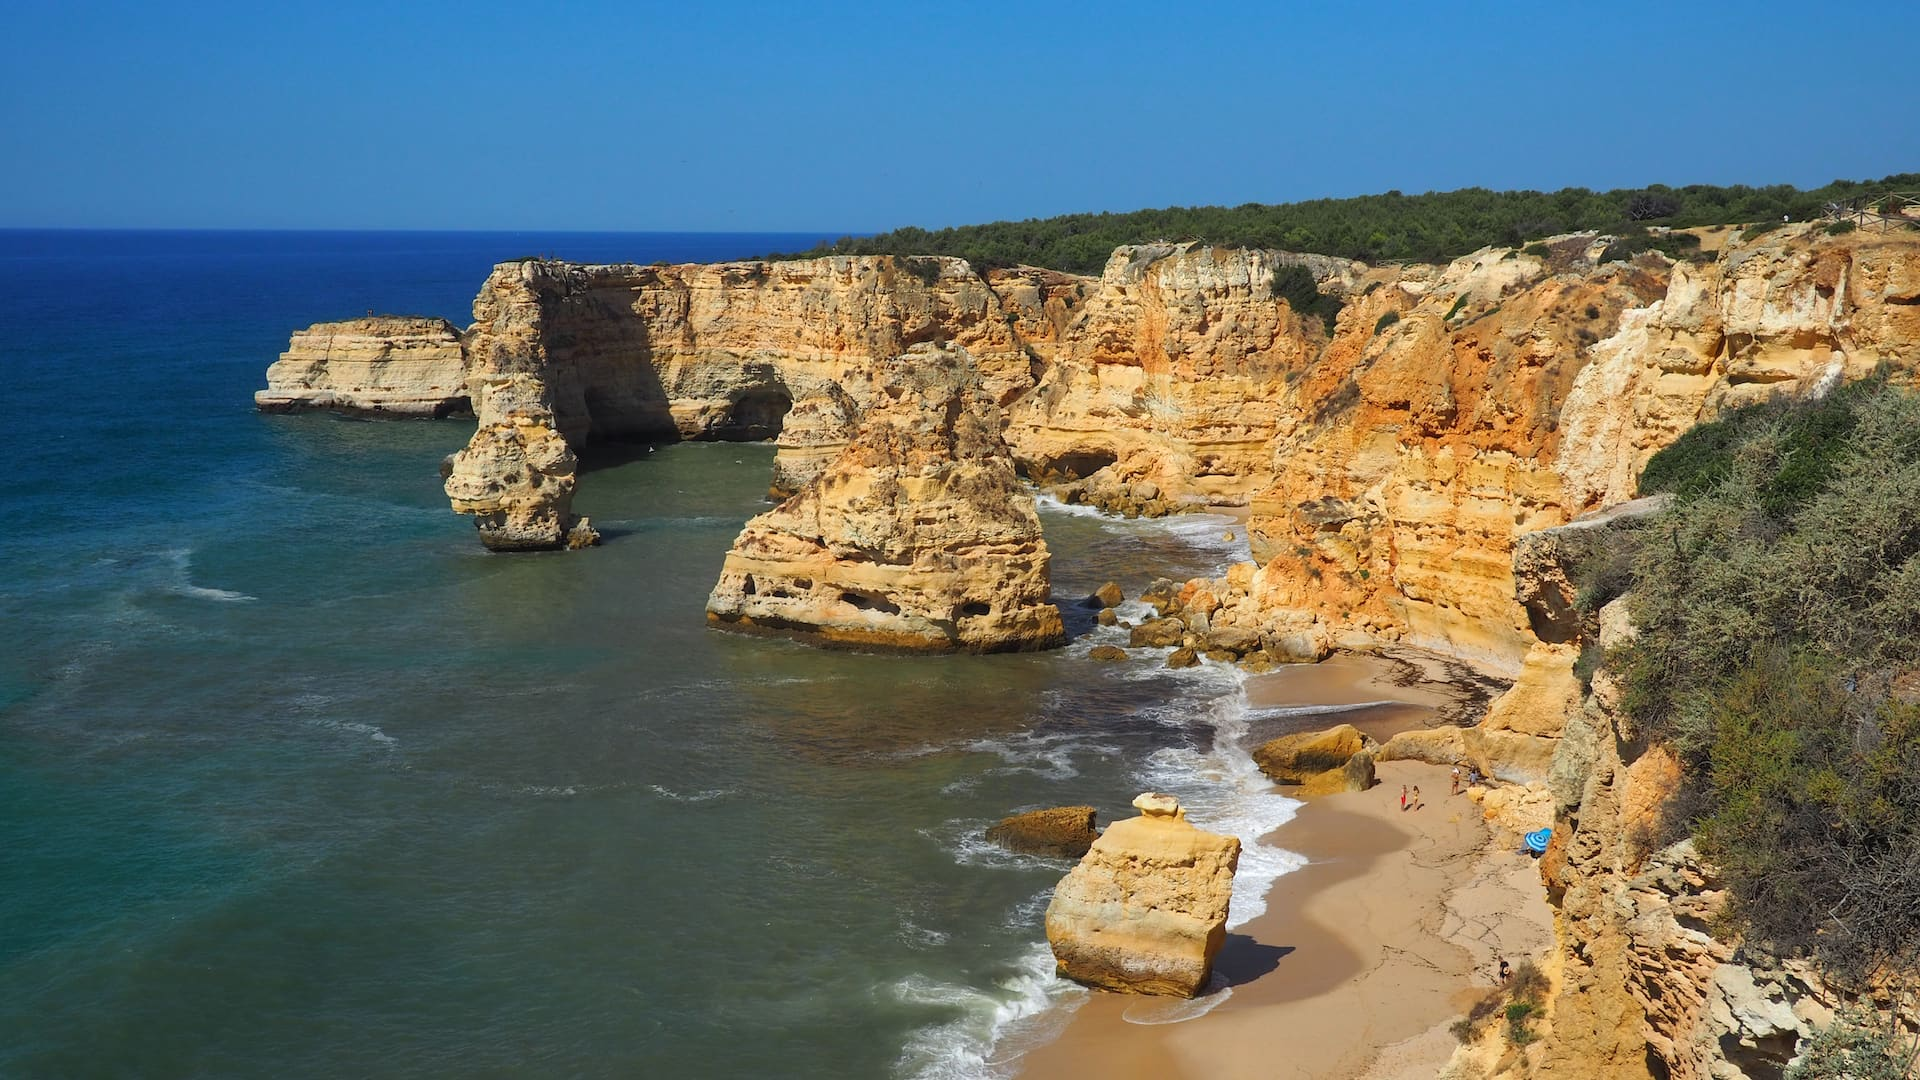 A golden sand beach surrounded by sandstone cliffs and large rocks just offshore